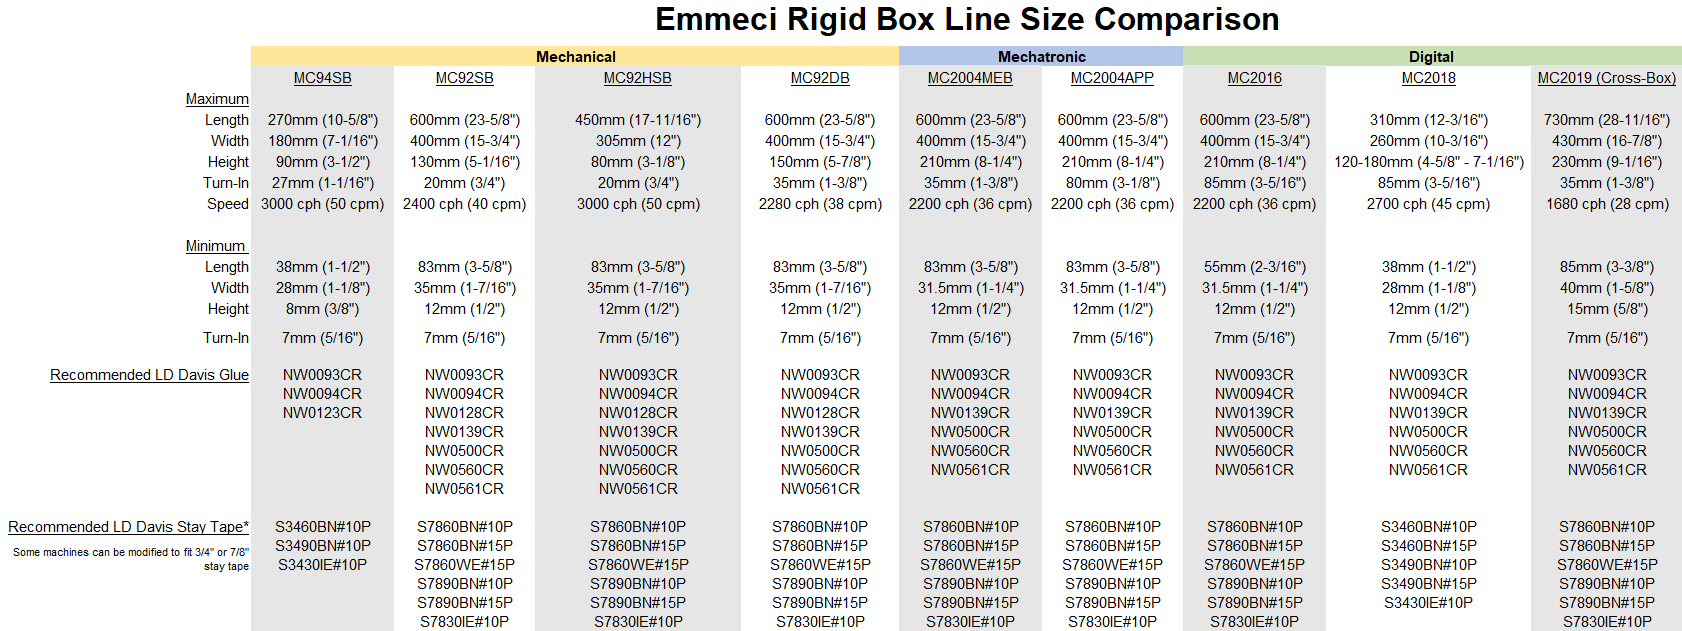 Emmeci Rigid Box Line Size Comparison Chart Glue and Stay Tape